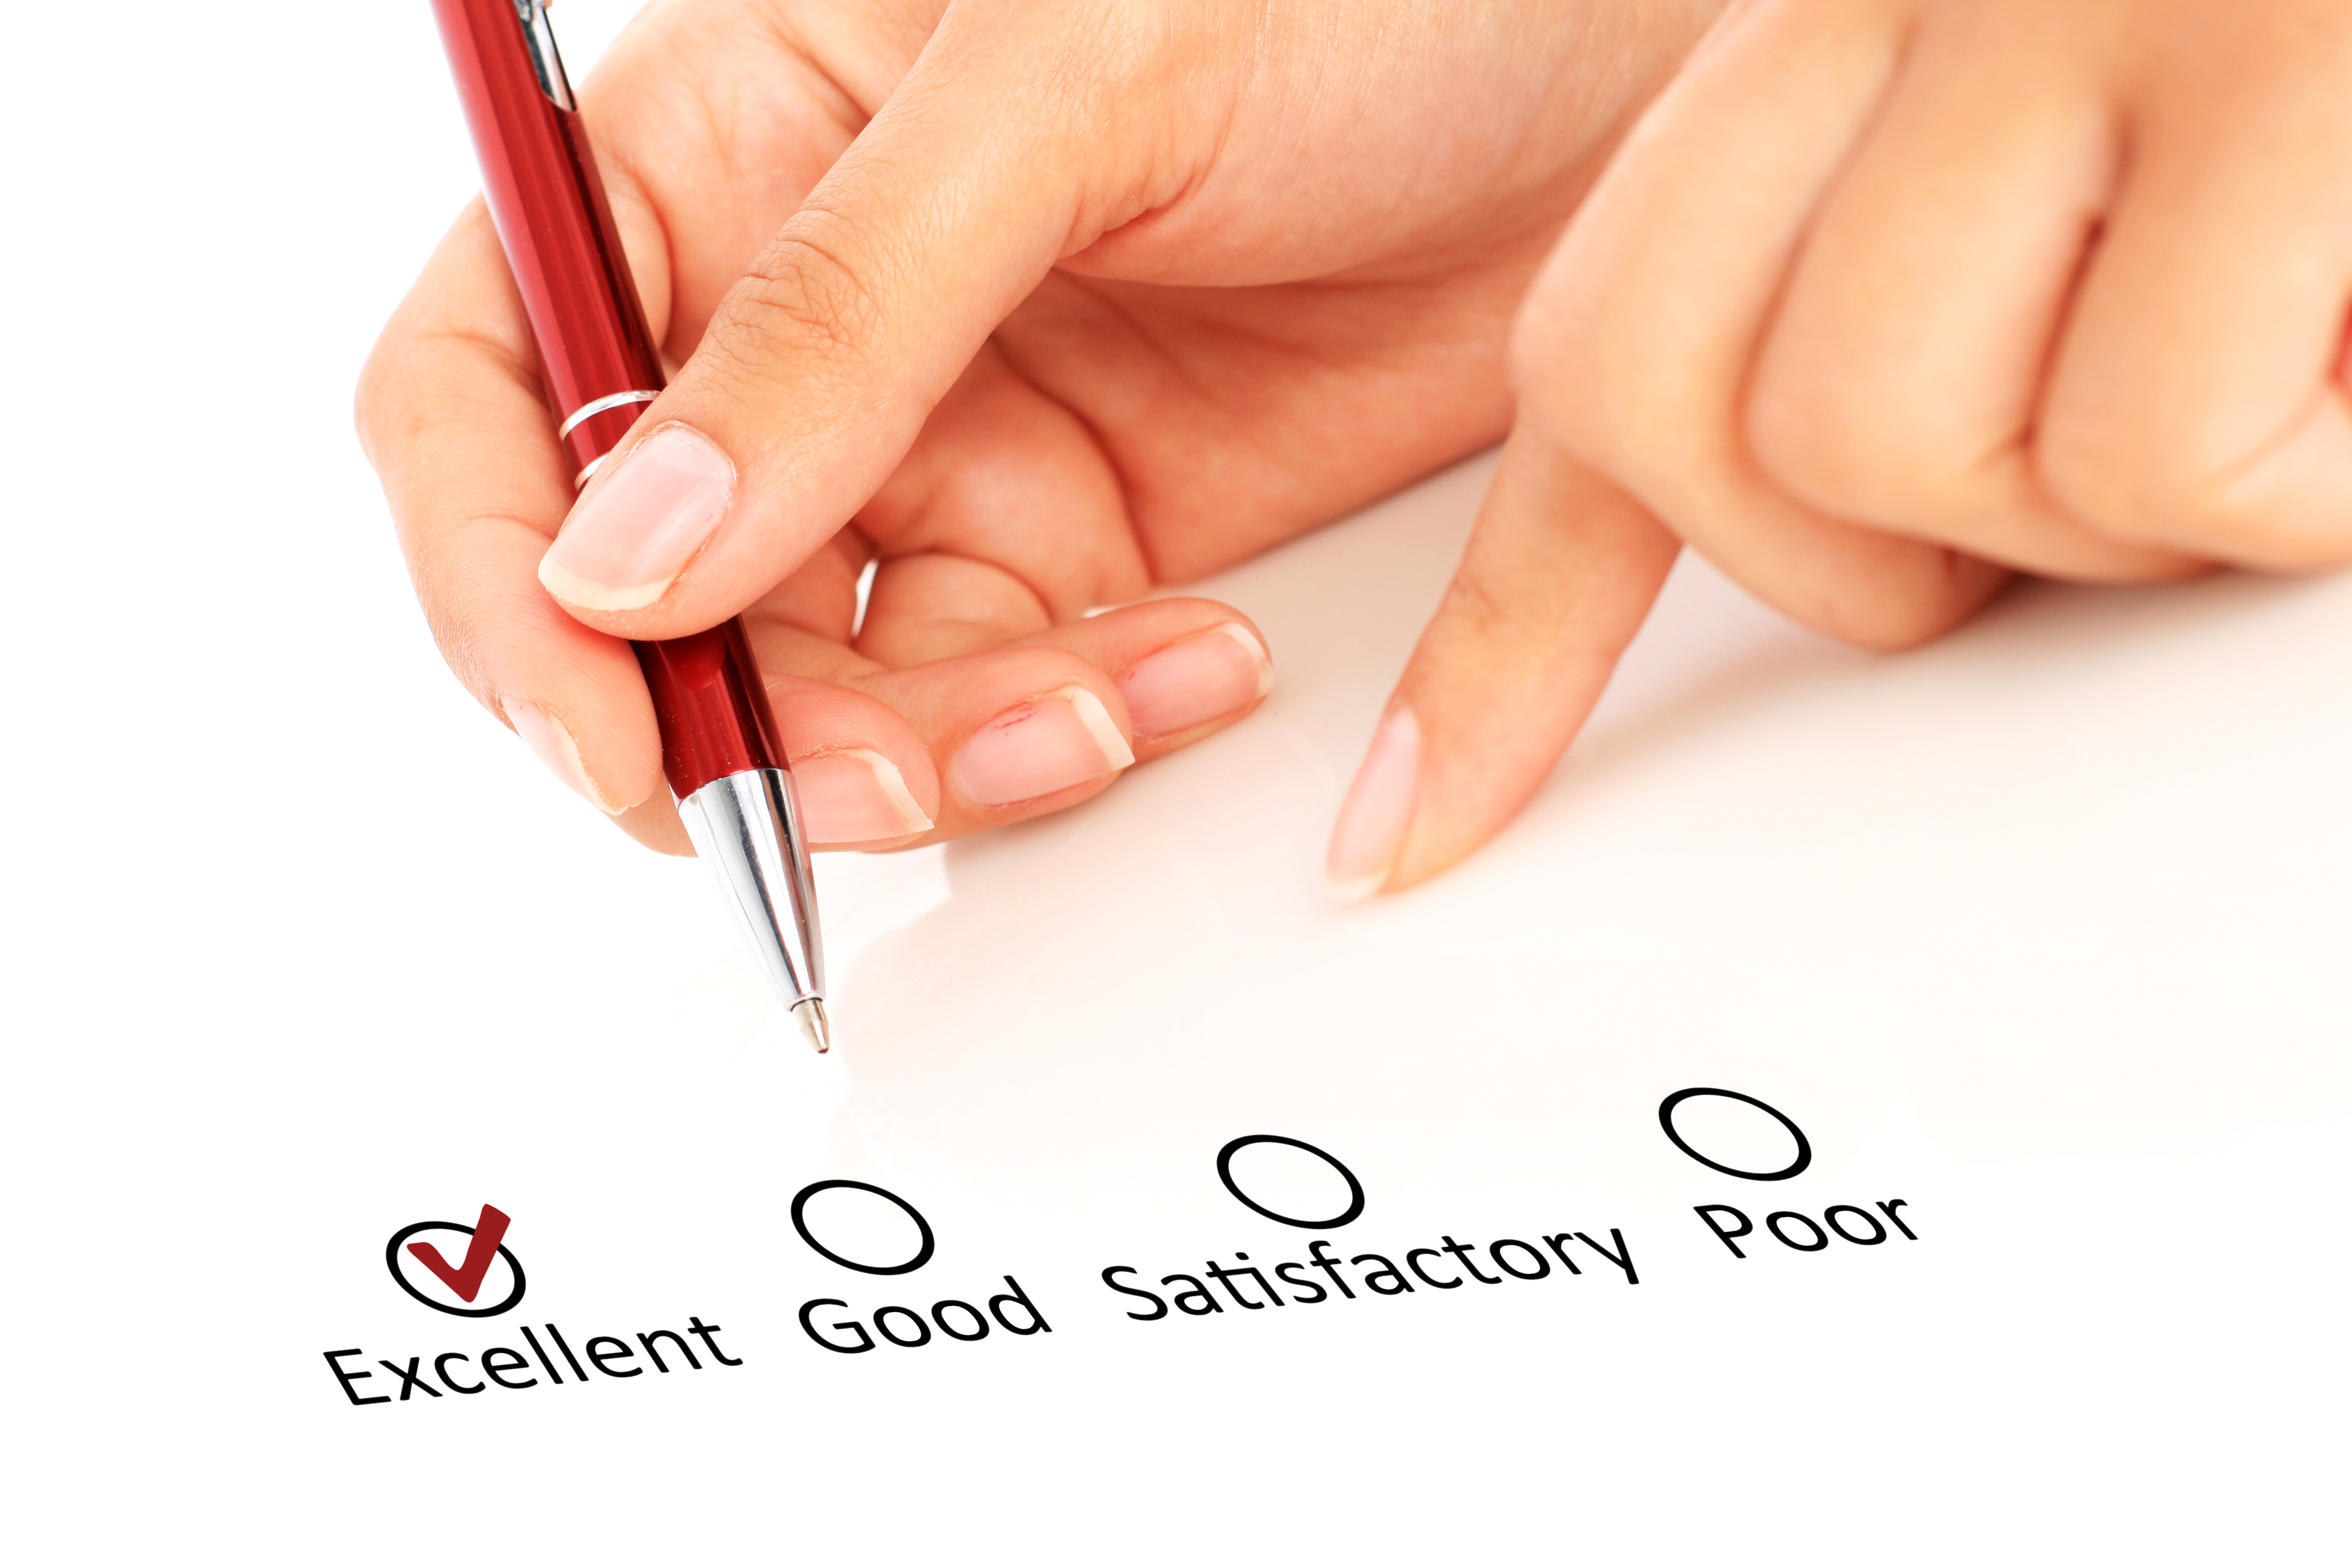 Should students have a say in teacher evaluations? Image: Shutterstock